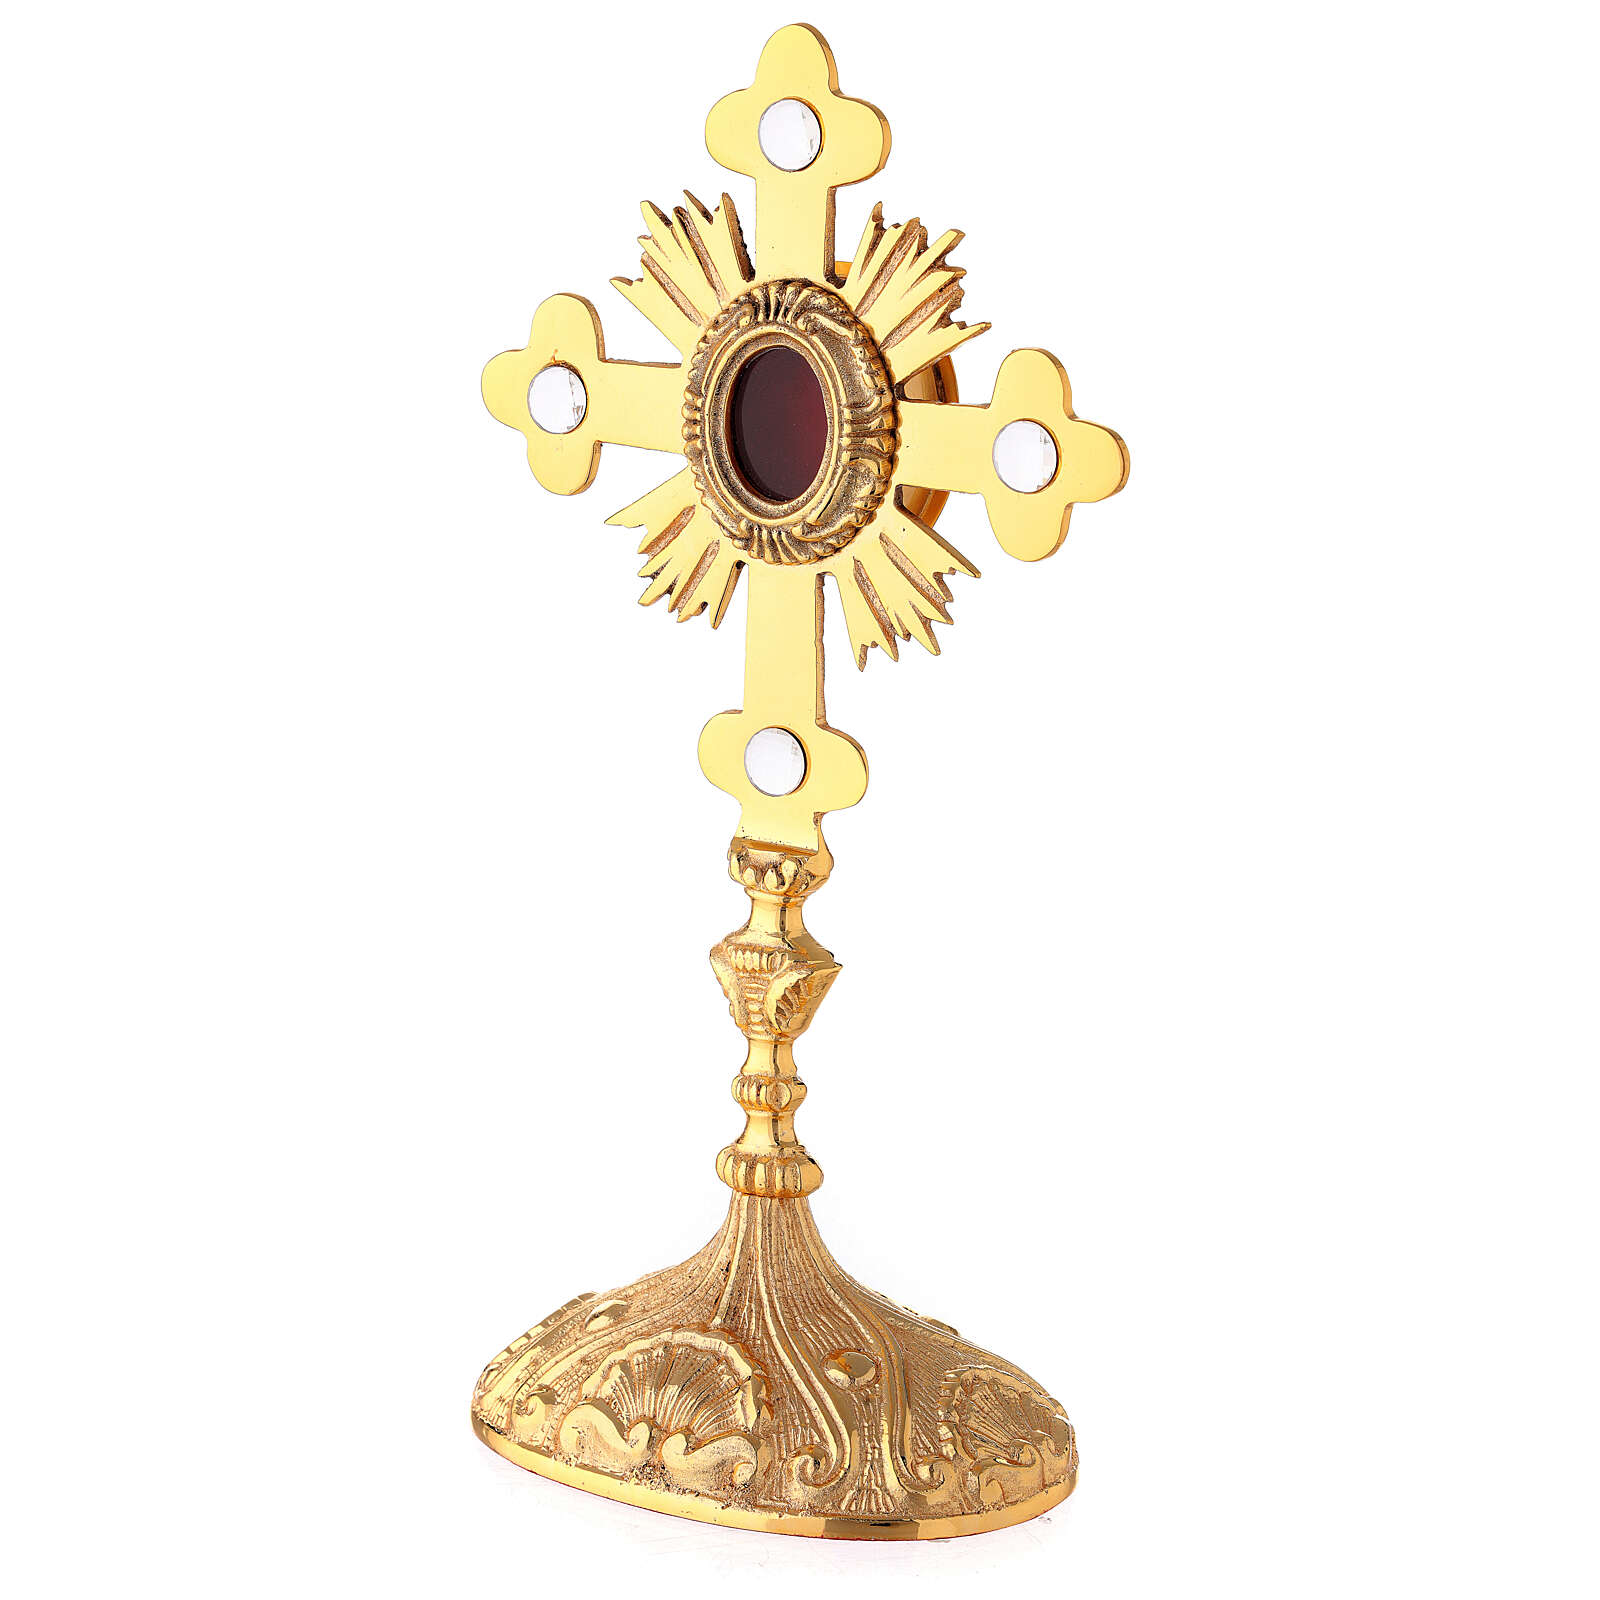 Oval reliquary with budded cross and rays gold plated brass 11 in 4